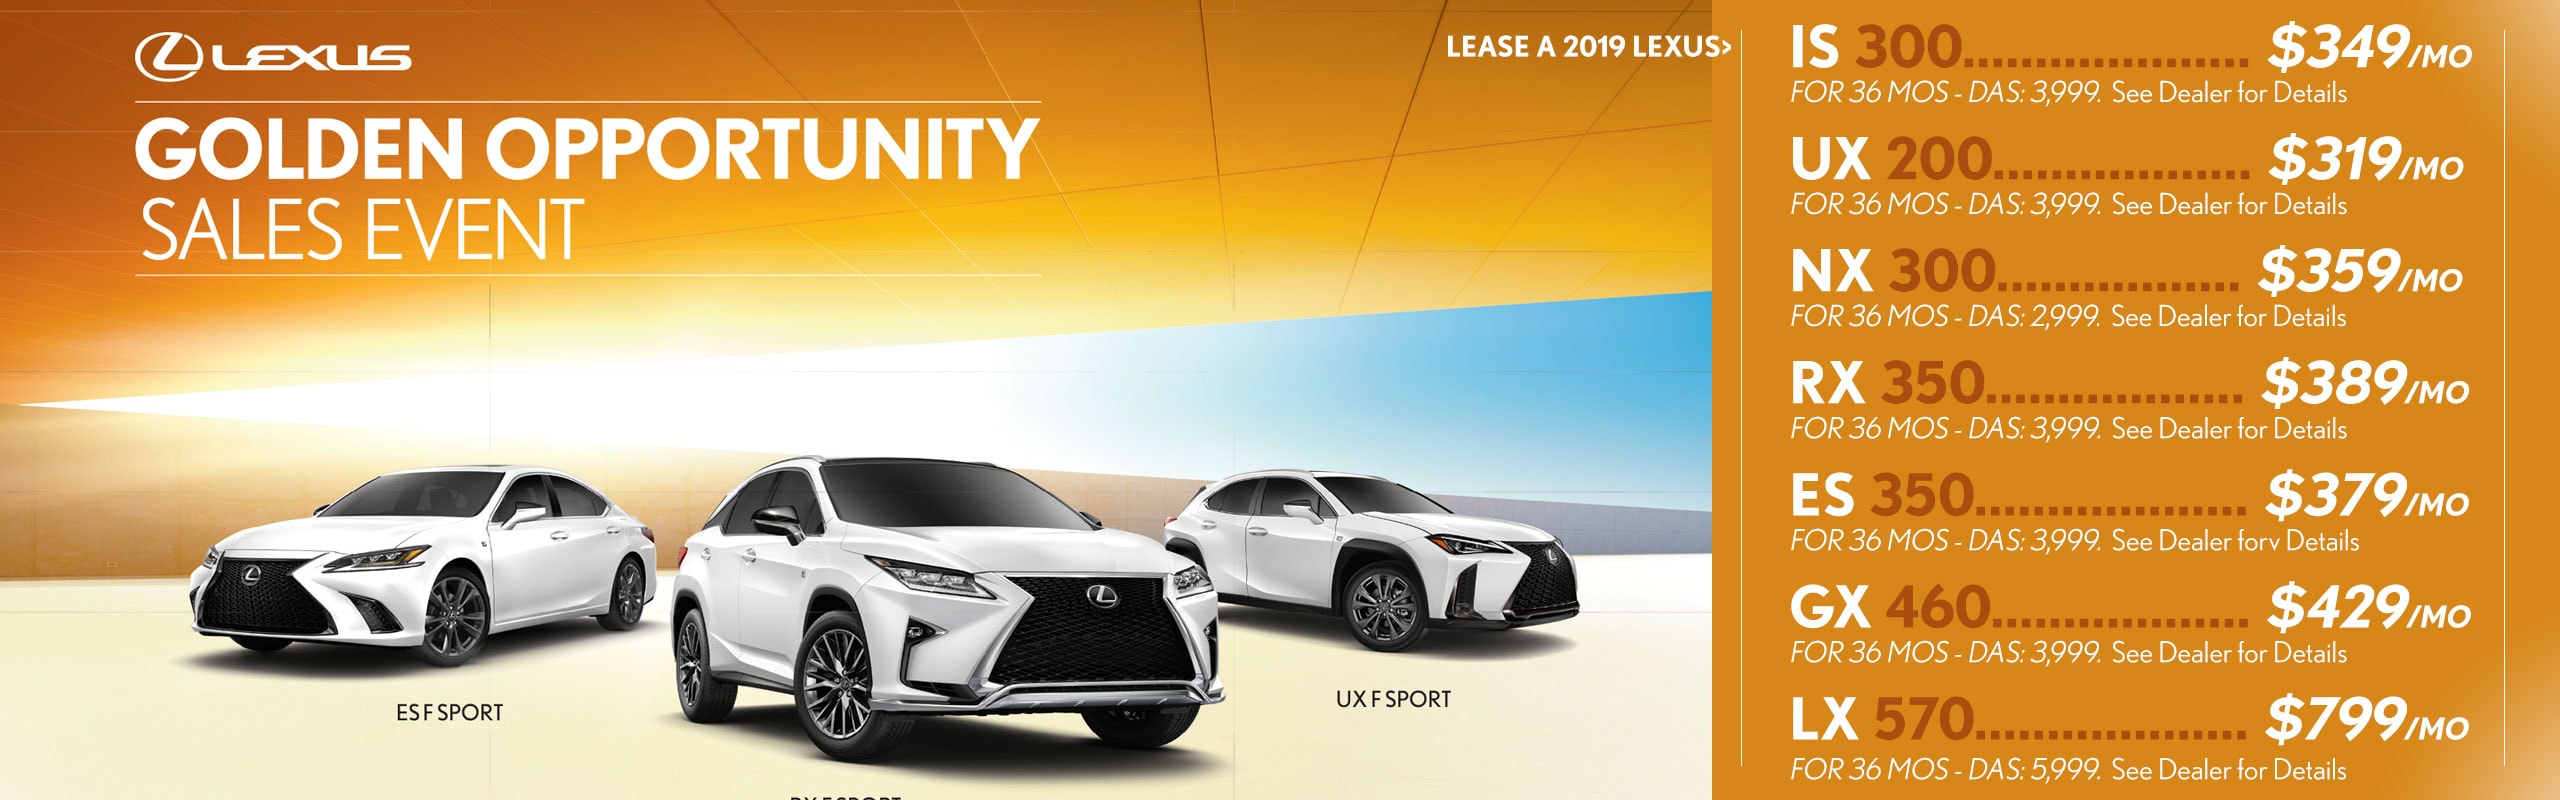 Lexus Dealers In Nj >> Lexus Of Queens New Lexus Dealership In Long Island City Ny